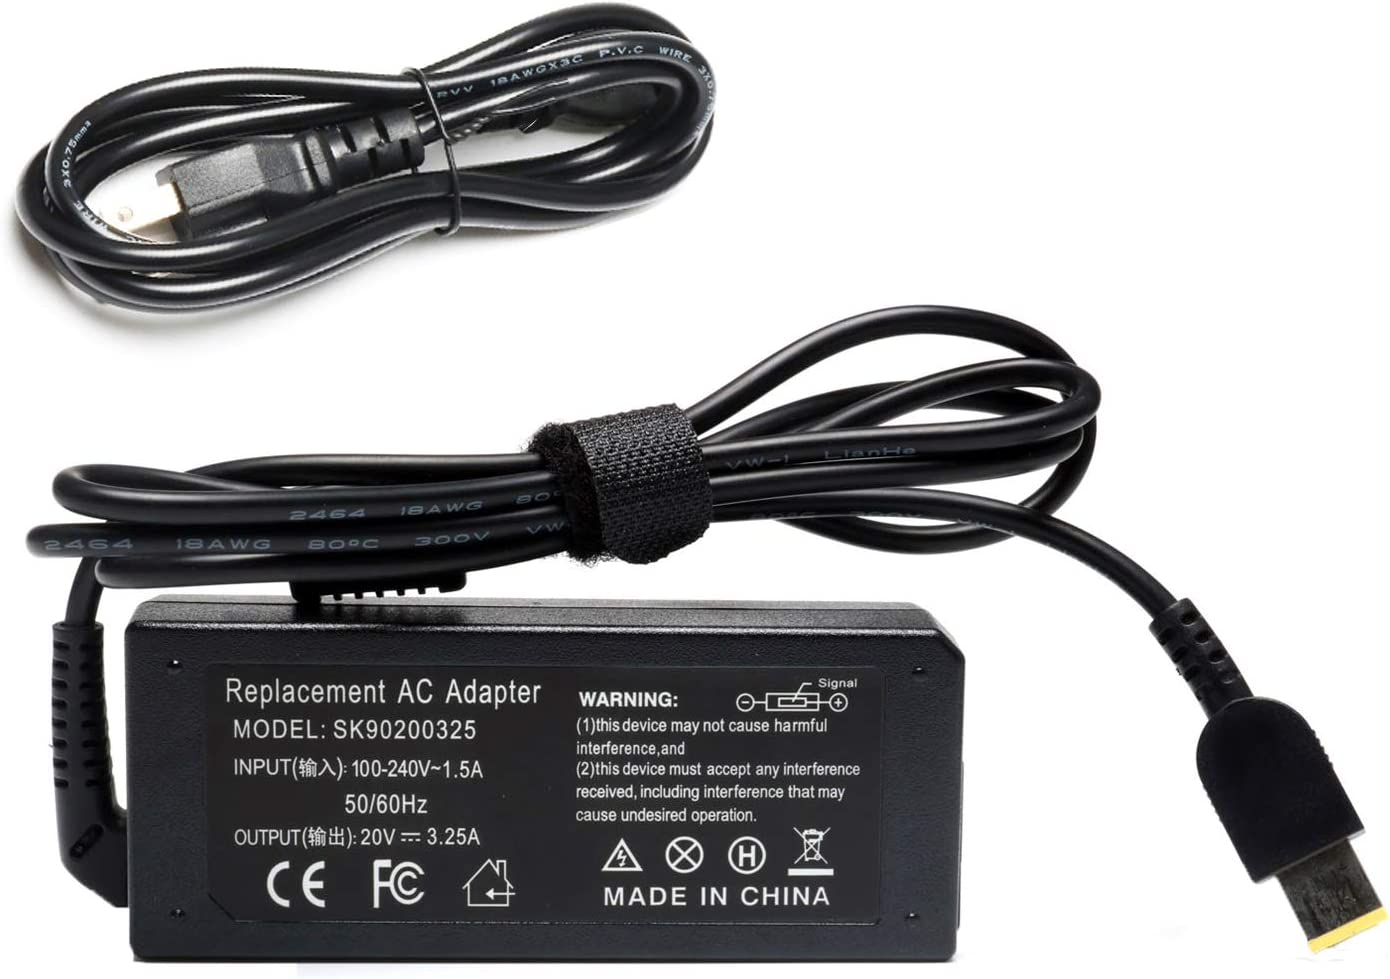 65W 20V 3.25A Replacement AC Power Adapter Charger for Lenovo Thinkpad T430 T440 T440S T440P T450 T460S T460 T540P T560 E440 E450 E550 E560 50-45 50-70 50-80 Z50-75 Z50 Z50-70Power Supply with Cord